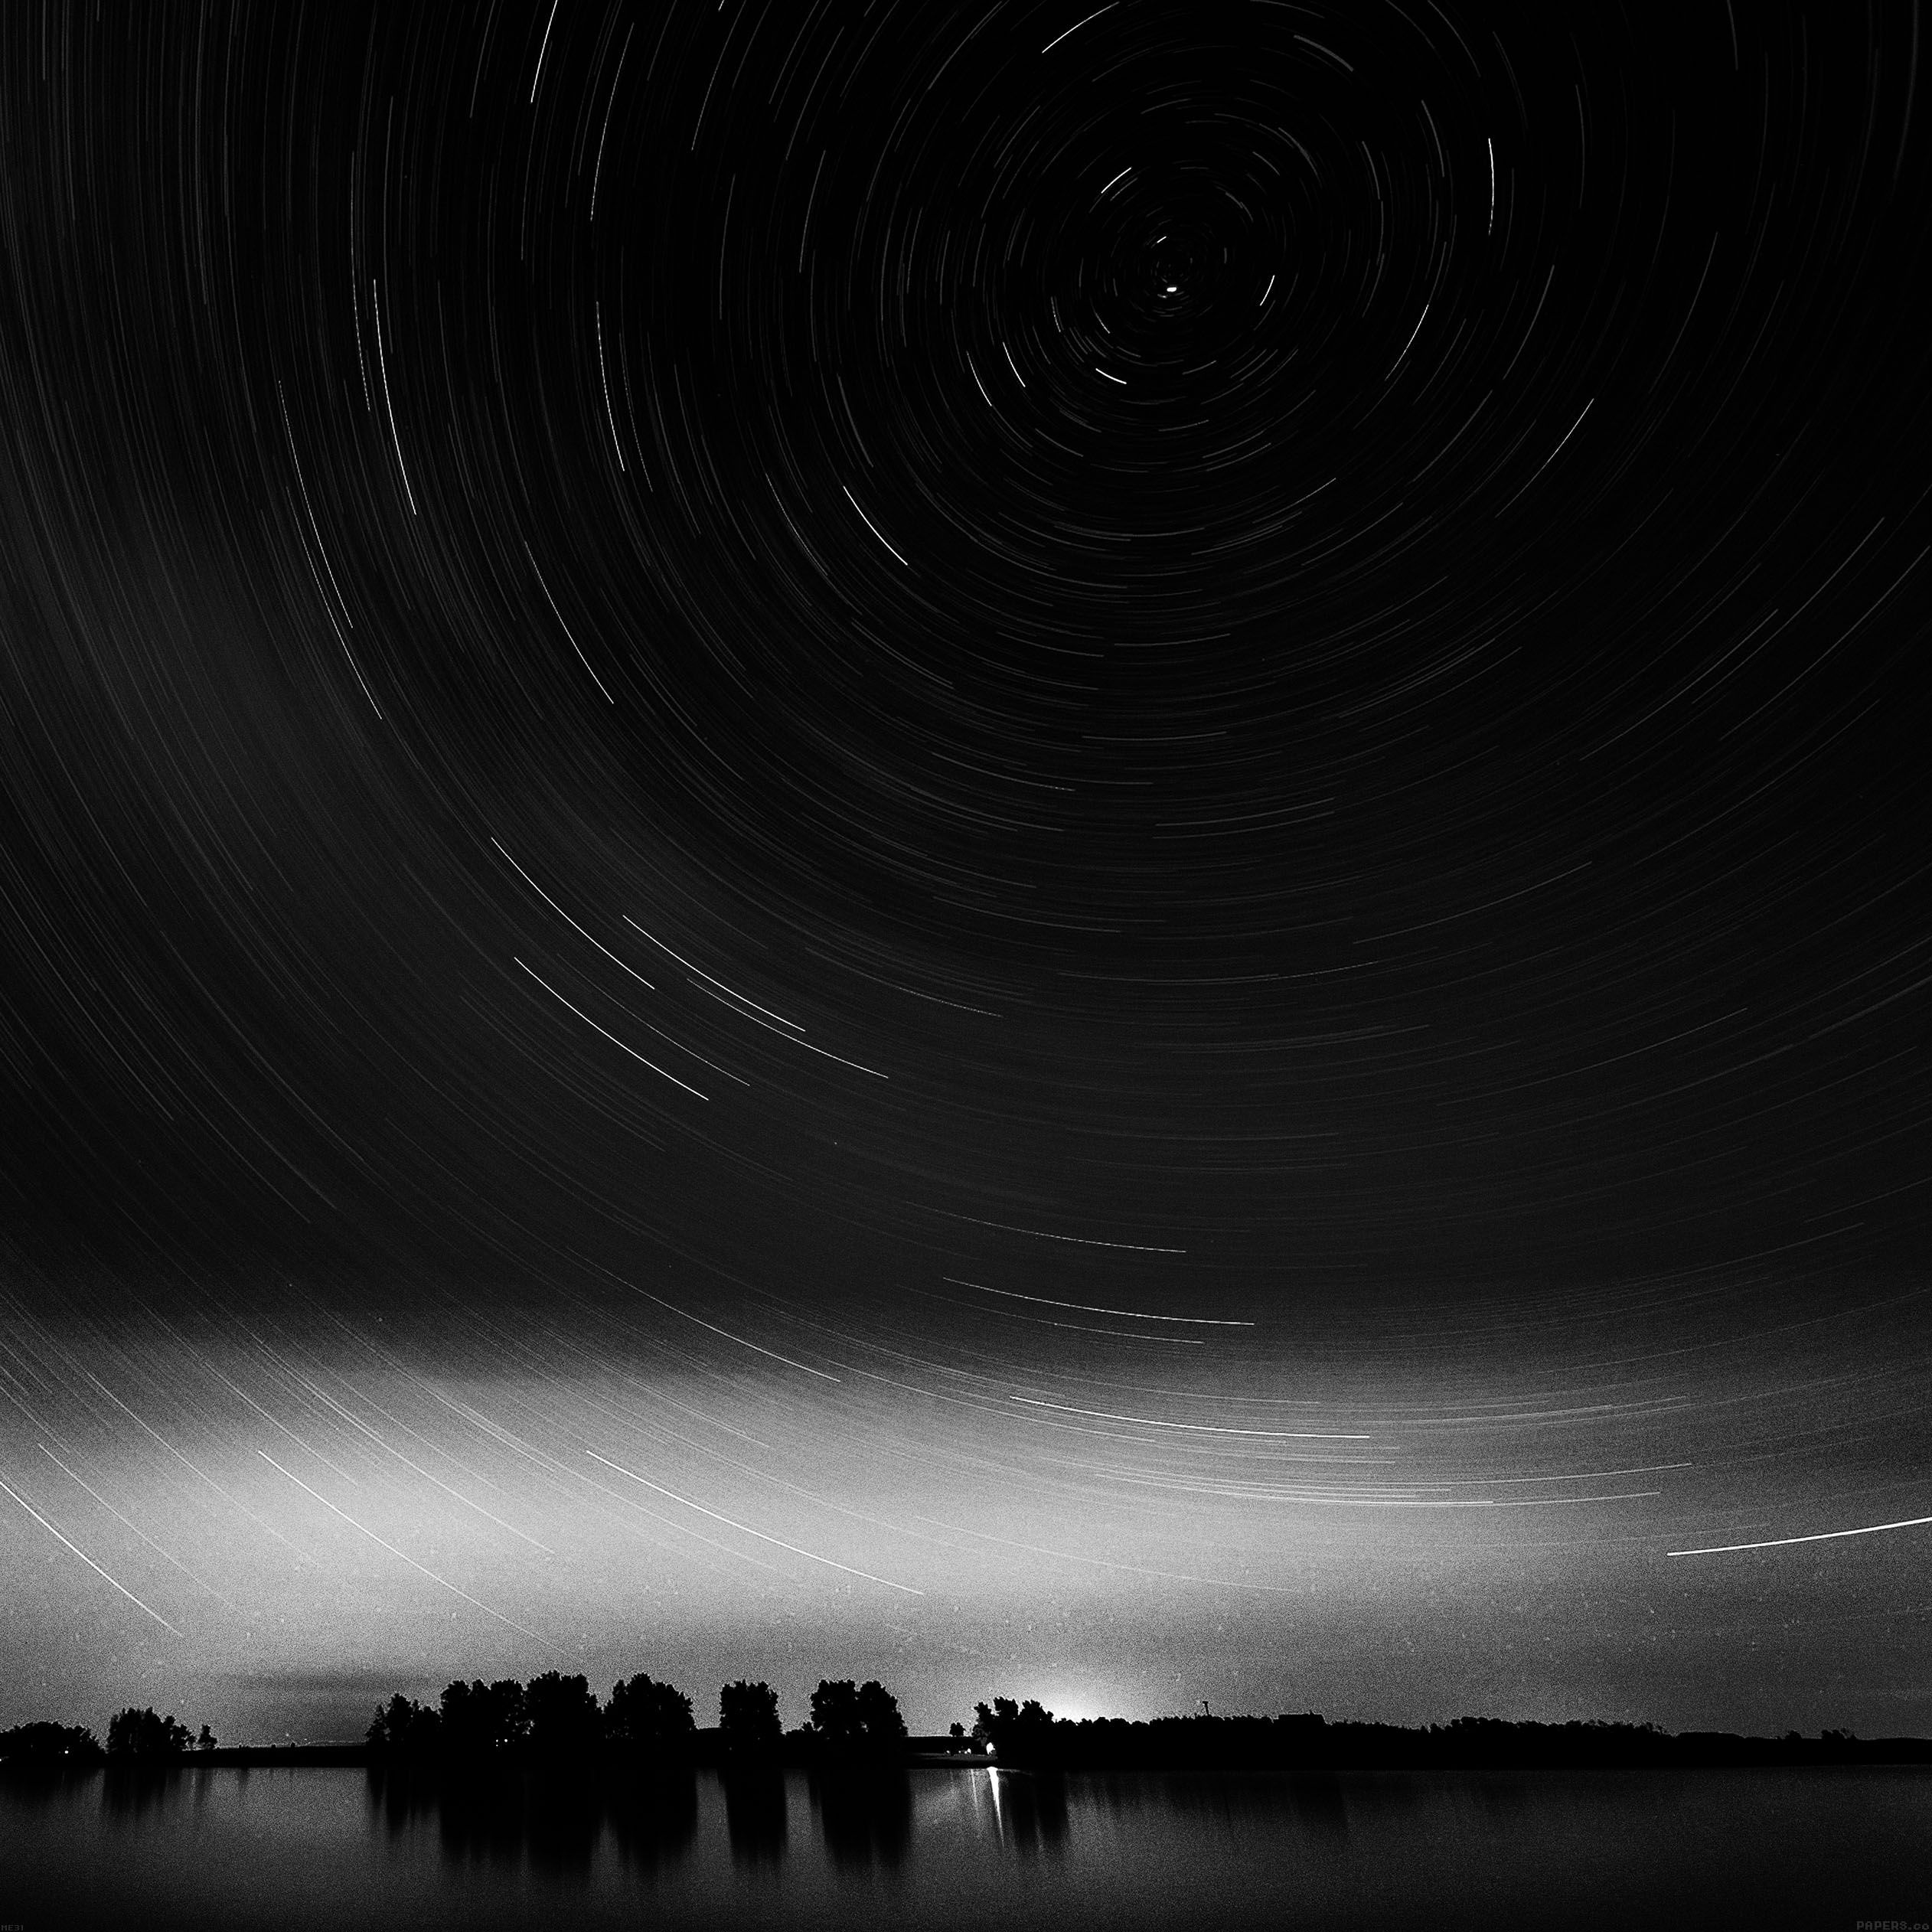 star-gazing-night-bw-9-wallpaper